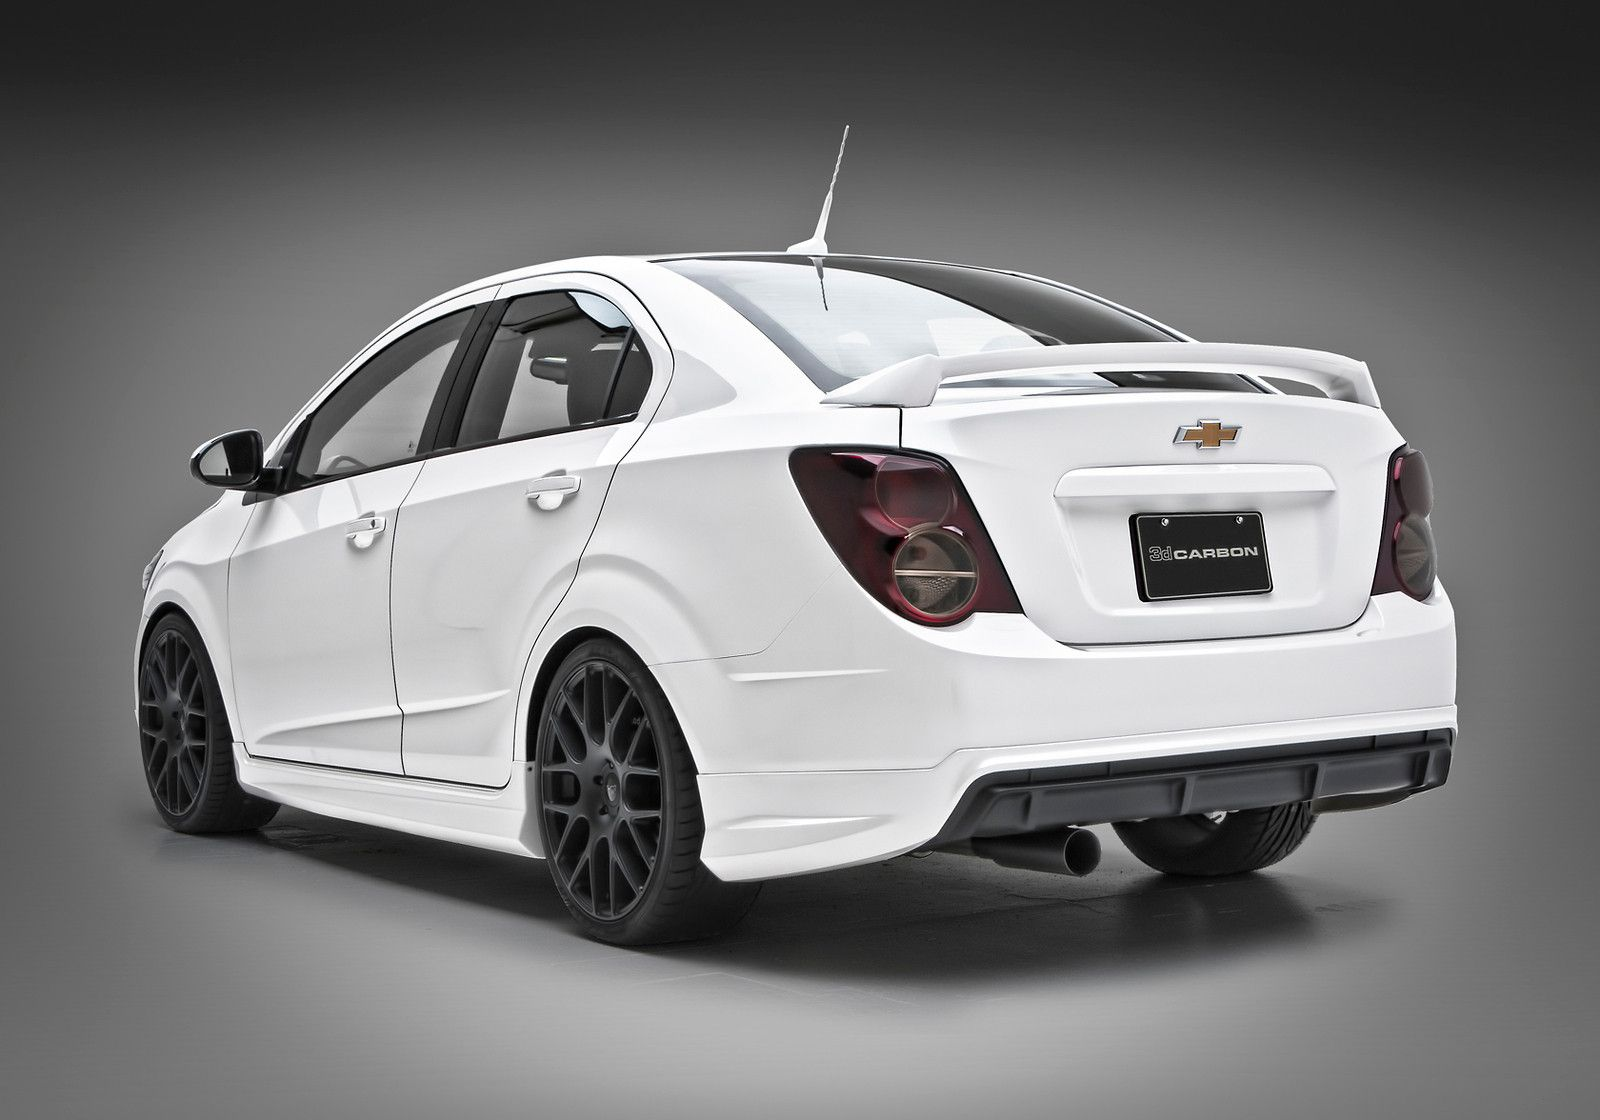 Chevrolet Sonic 4 Dr Sedan Urethane 3dcarbon 5 Piece Full Body